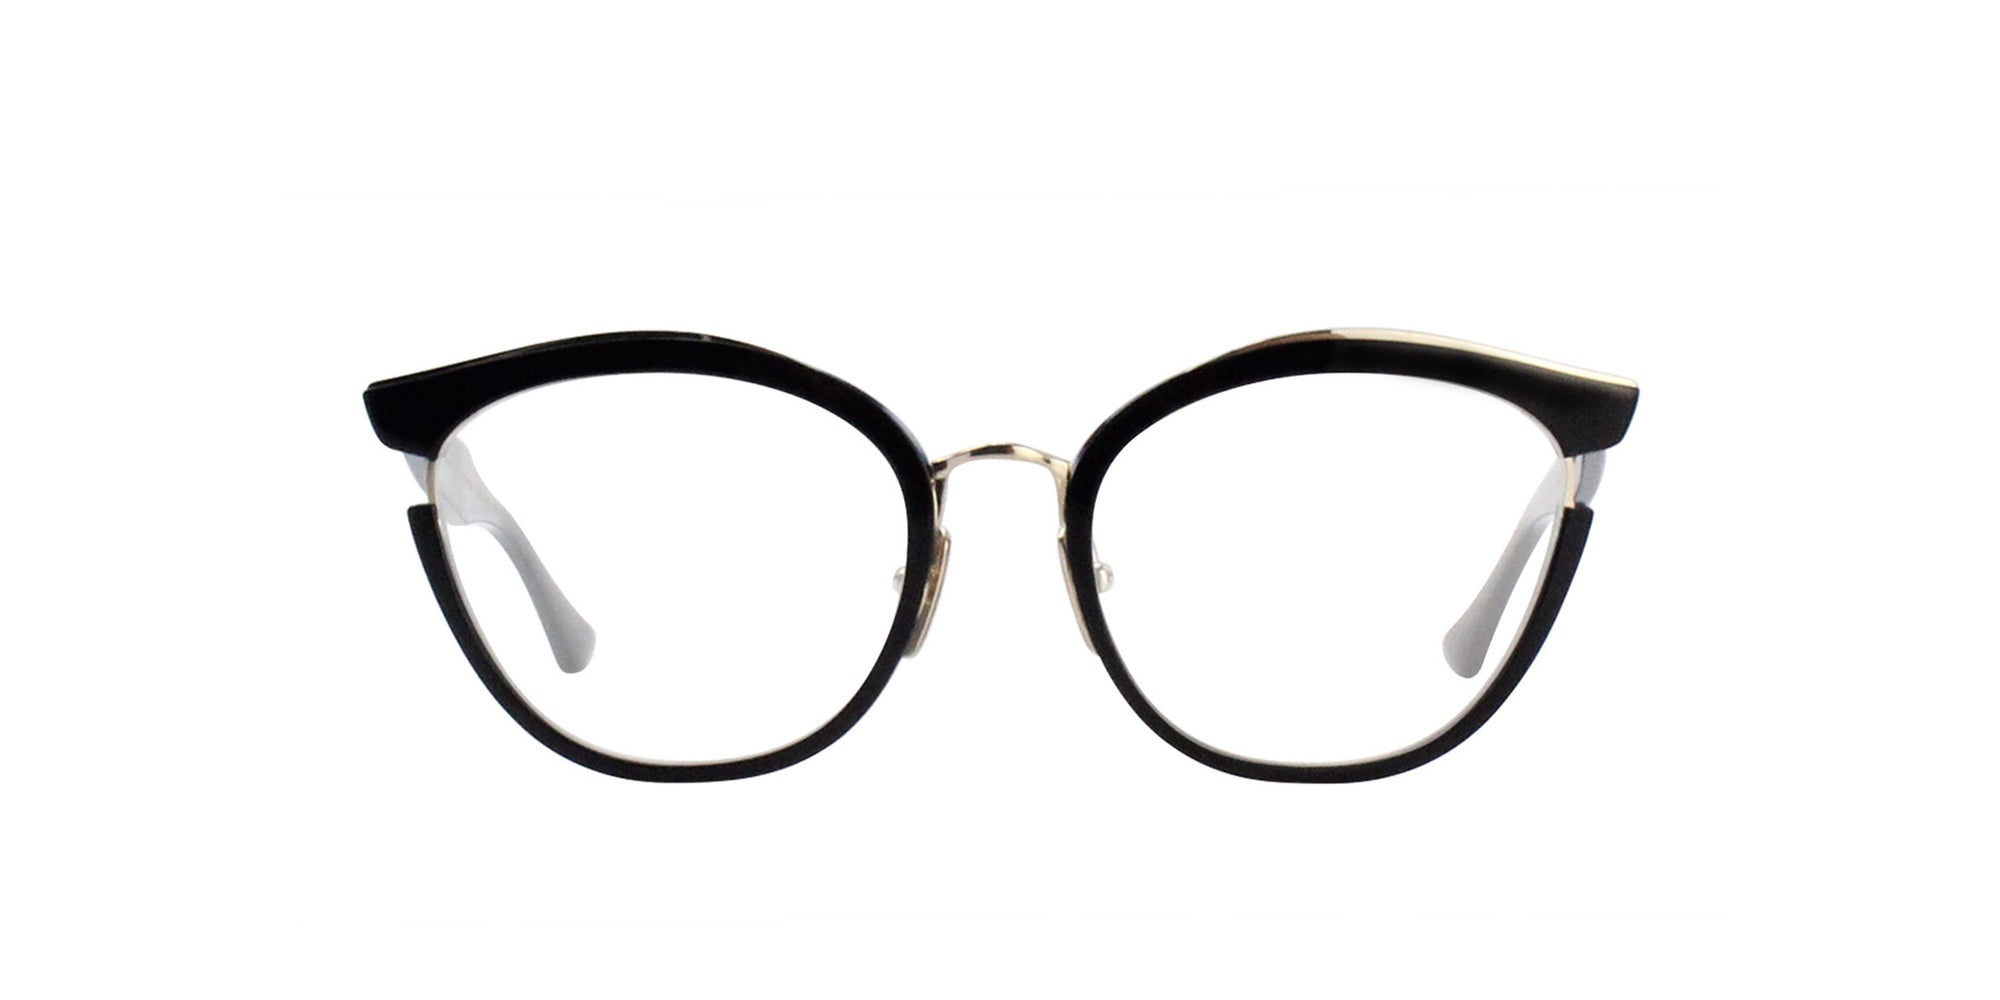 Dita - Mikro Navy-Navy Swirl - 14K Gold Oval Women Eyeglasses - 52mm-Eyeglasses-Designer Eyes